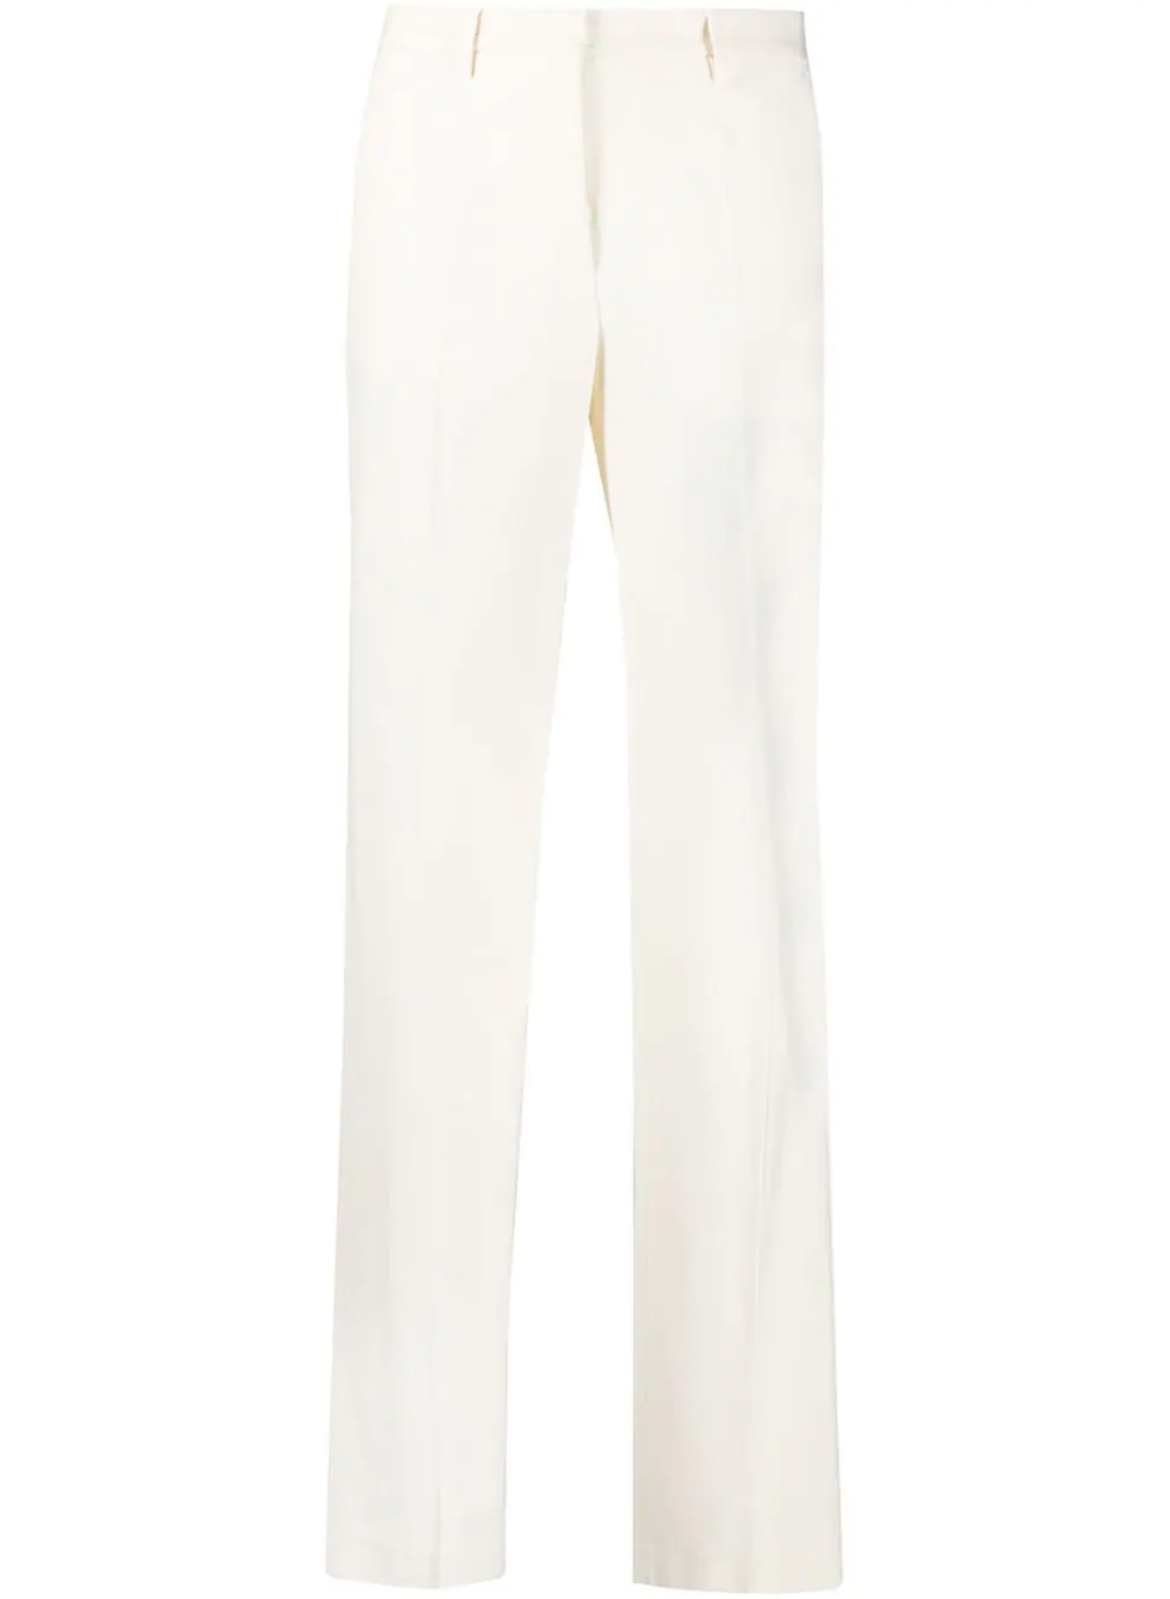 Off-White tailored wool-blend trousers HK$6,345 from farfetch